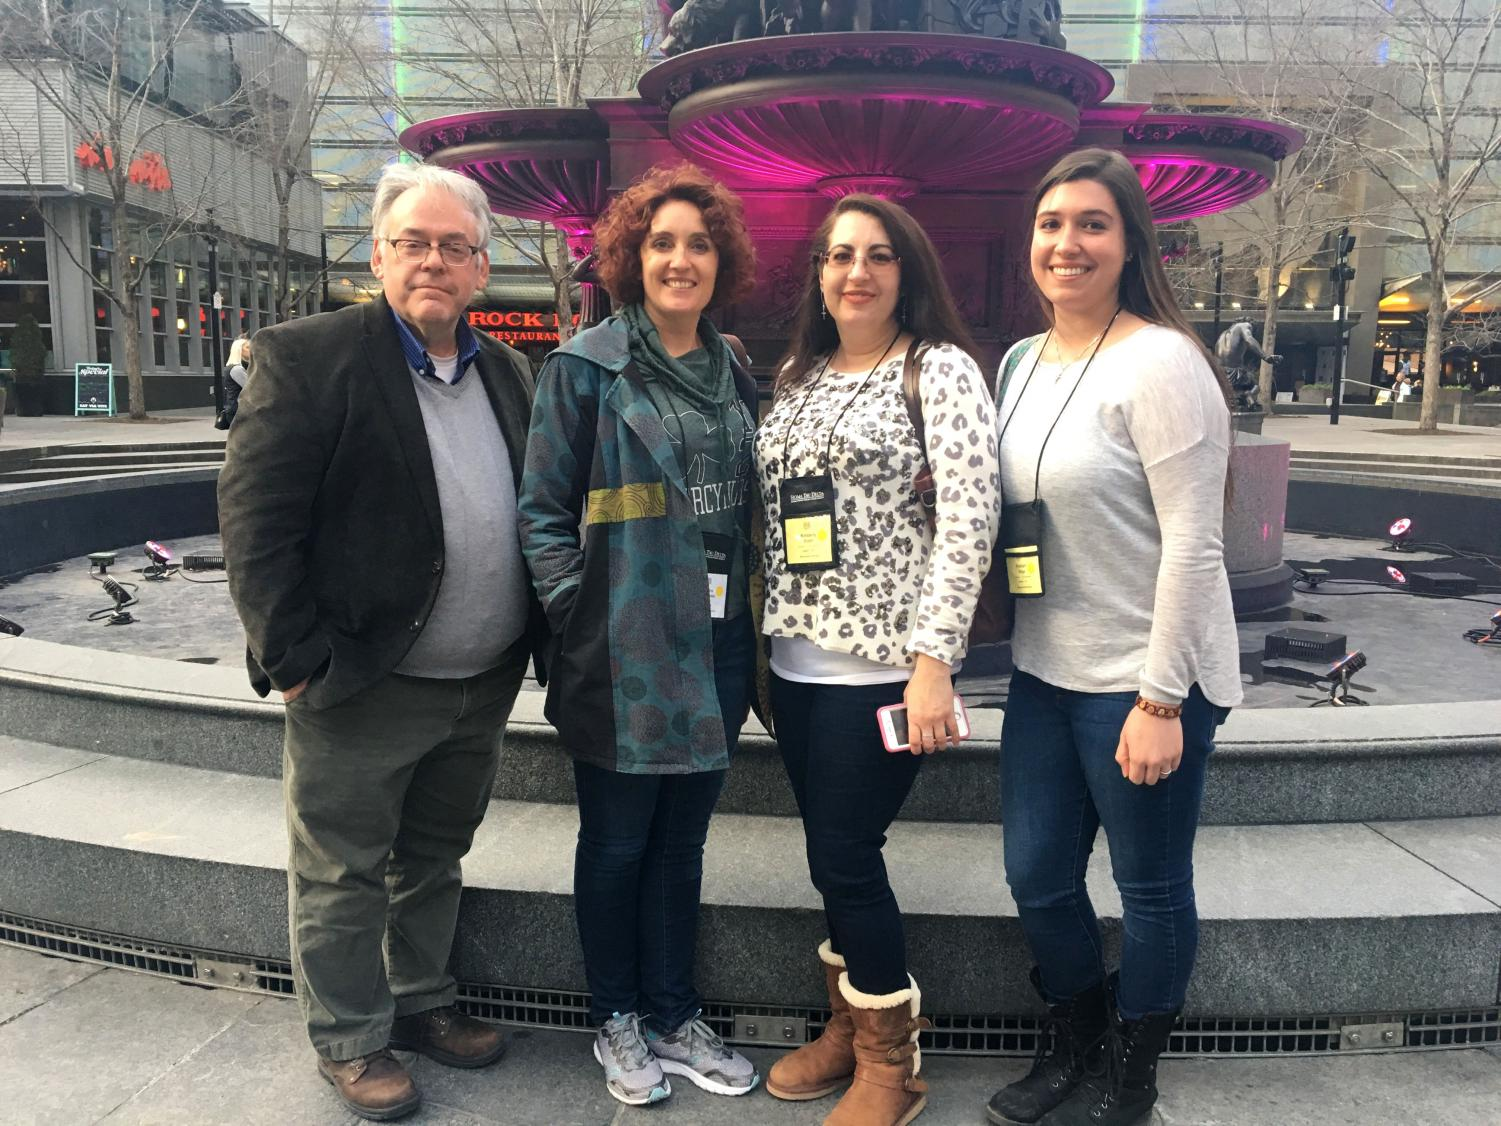 From left, Brian Reed, Ph.D., and students Audra Alexander, Kimberly Kuehl and Kristian Biega attended a conference in Cincinnati, Ohio.